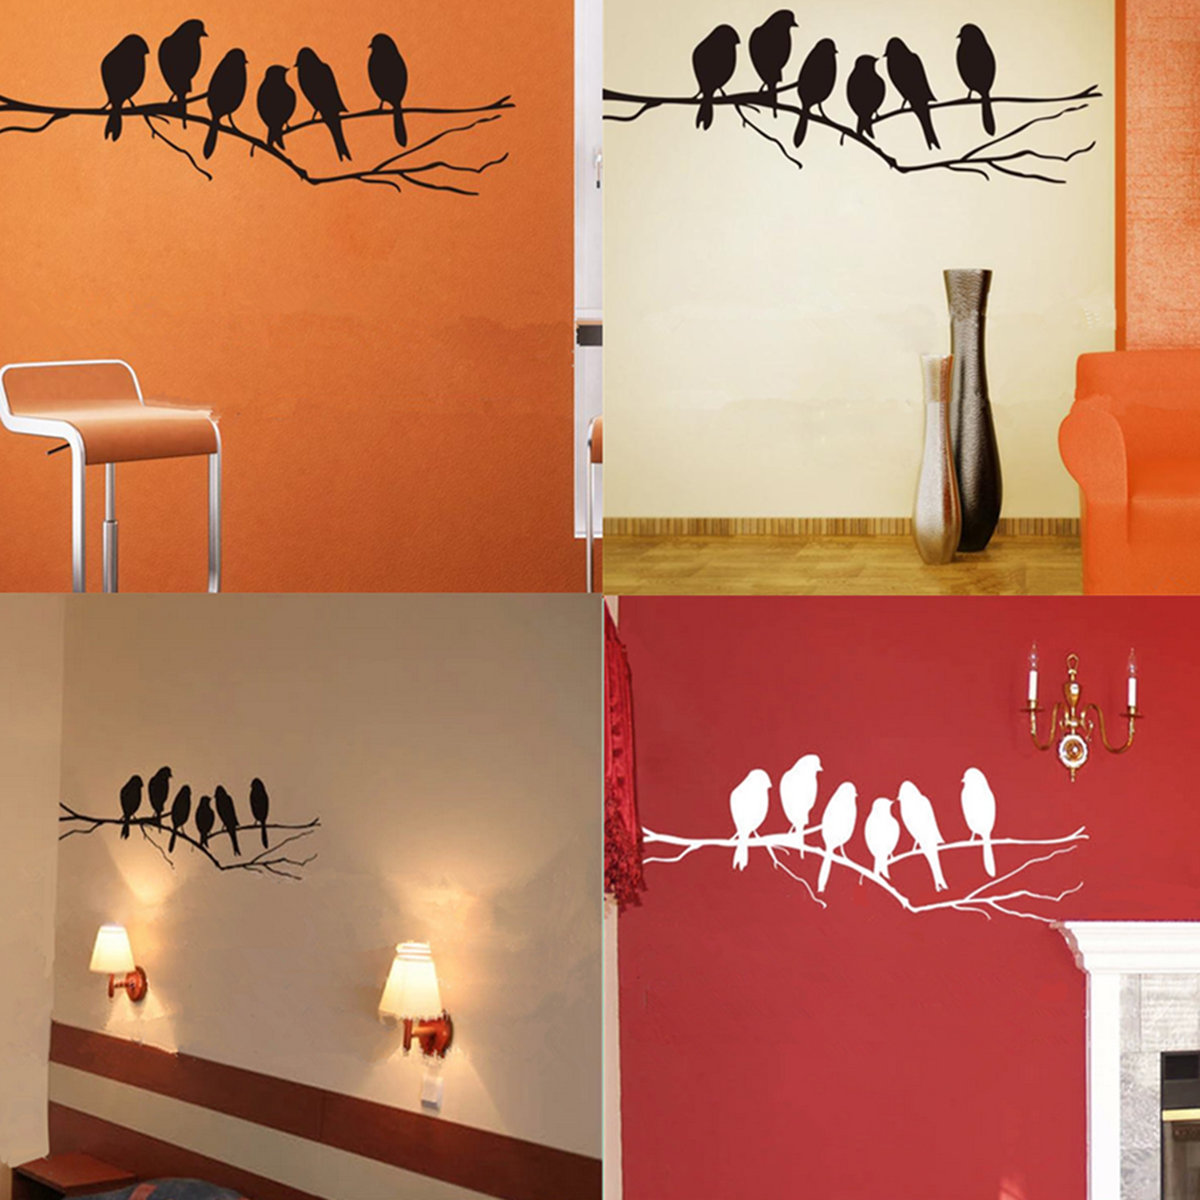 Removable birds branch tree wall stickers home art decals diy removable birds branch tree wall stickers home art decals diy living room decor amipublicfo Choice Image